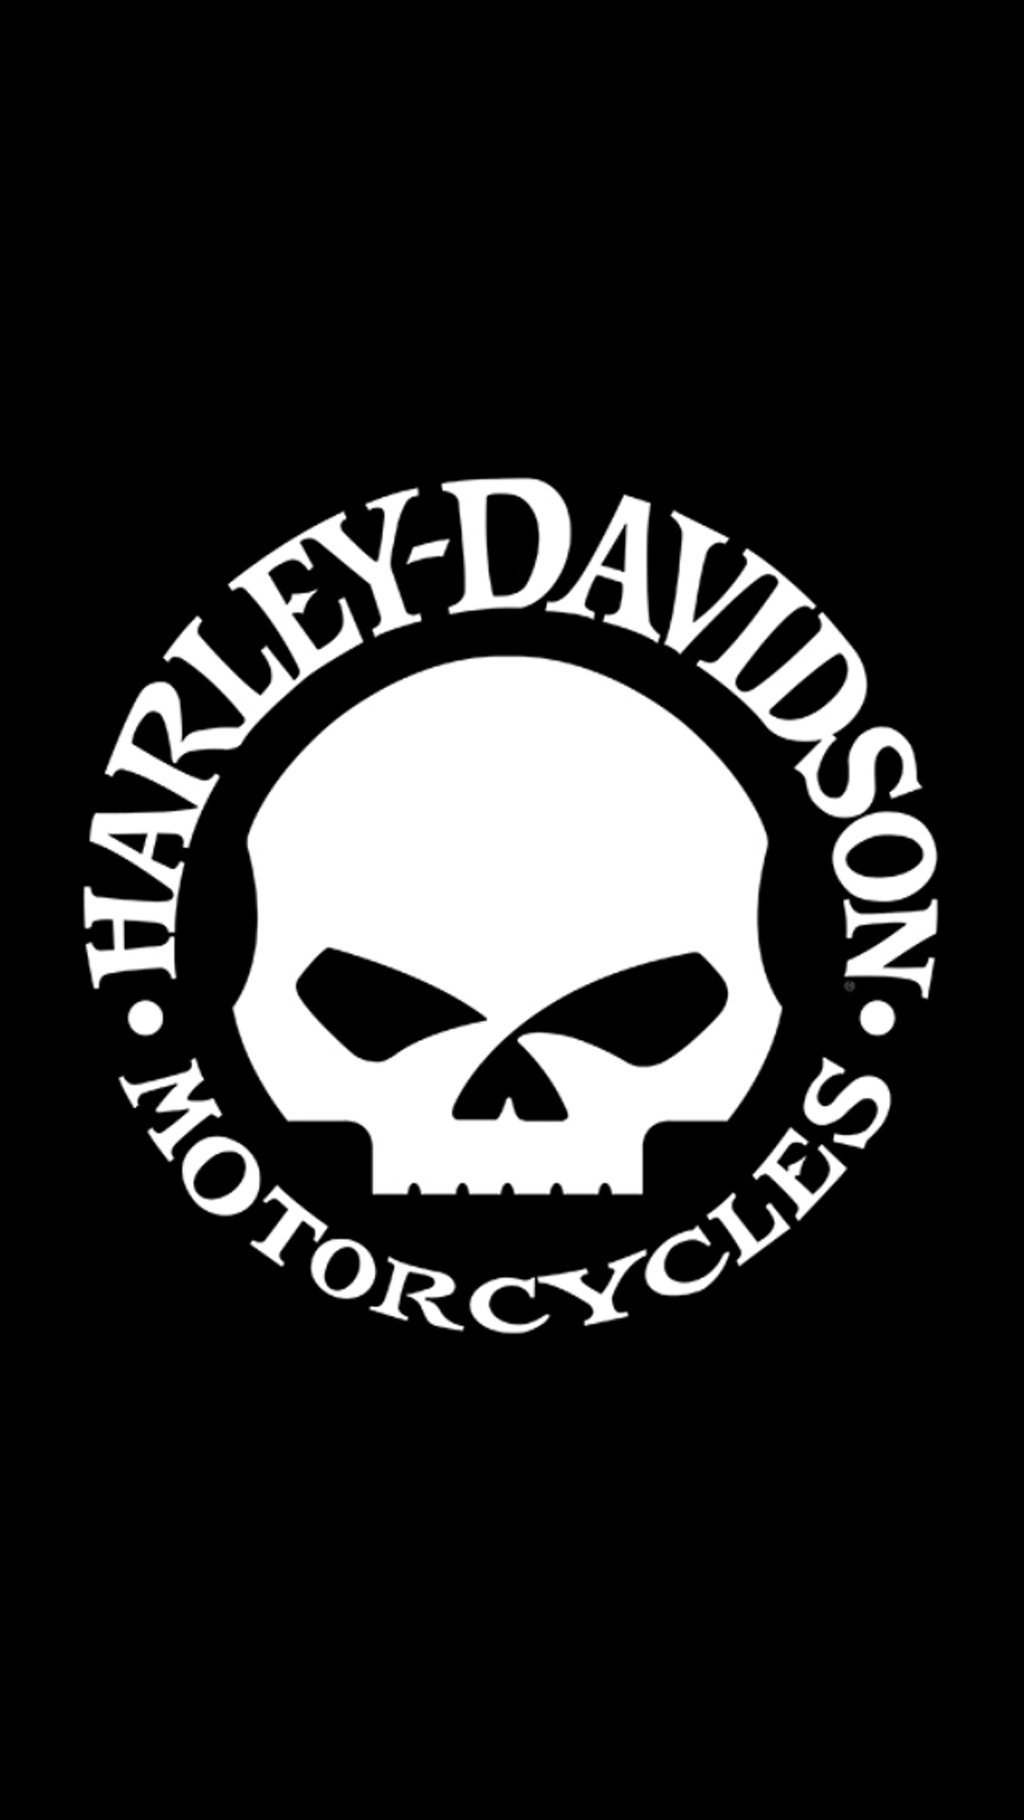 Harley davidson willie g wallpaper wallpapersafari willie g skull black phone wallpaper by lauraspiteri on deviantart voltagebd Choice Image